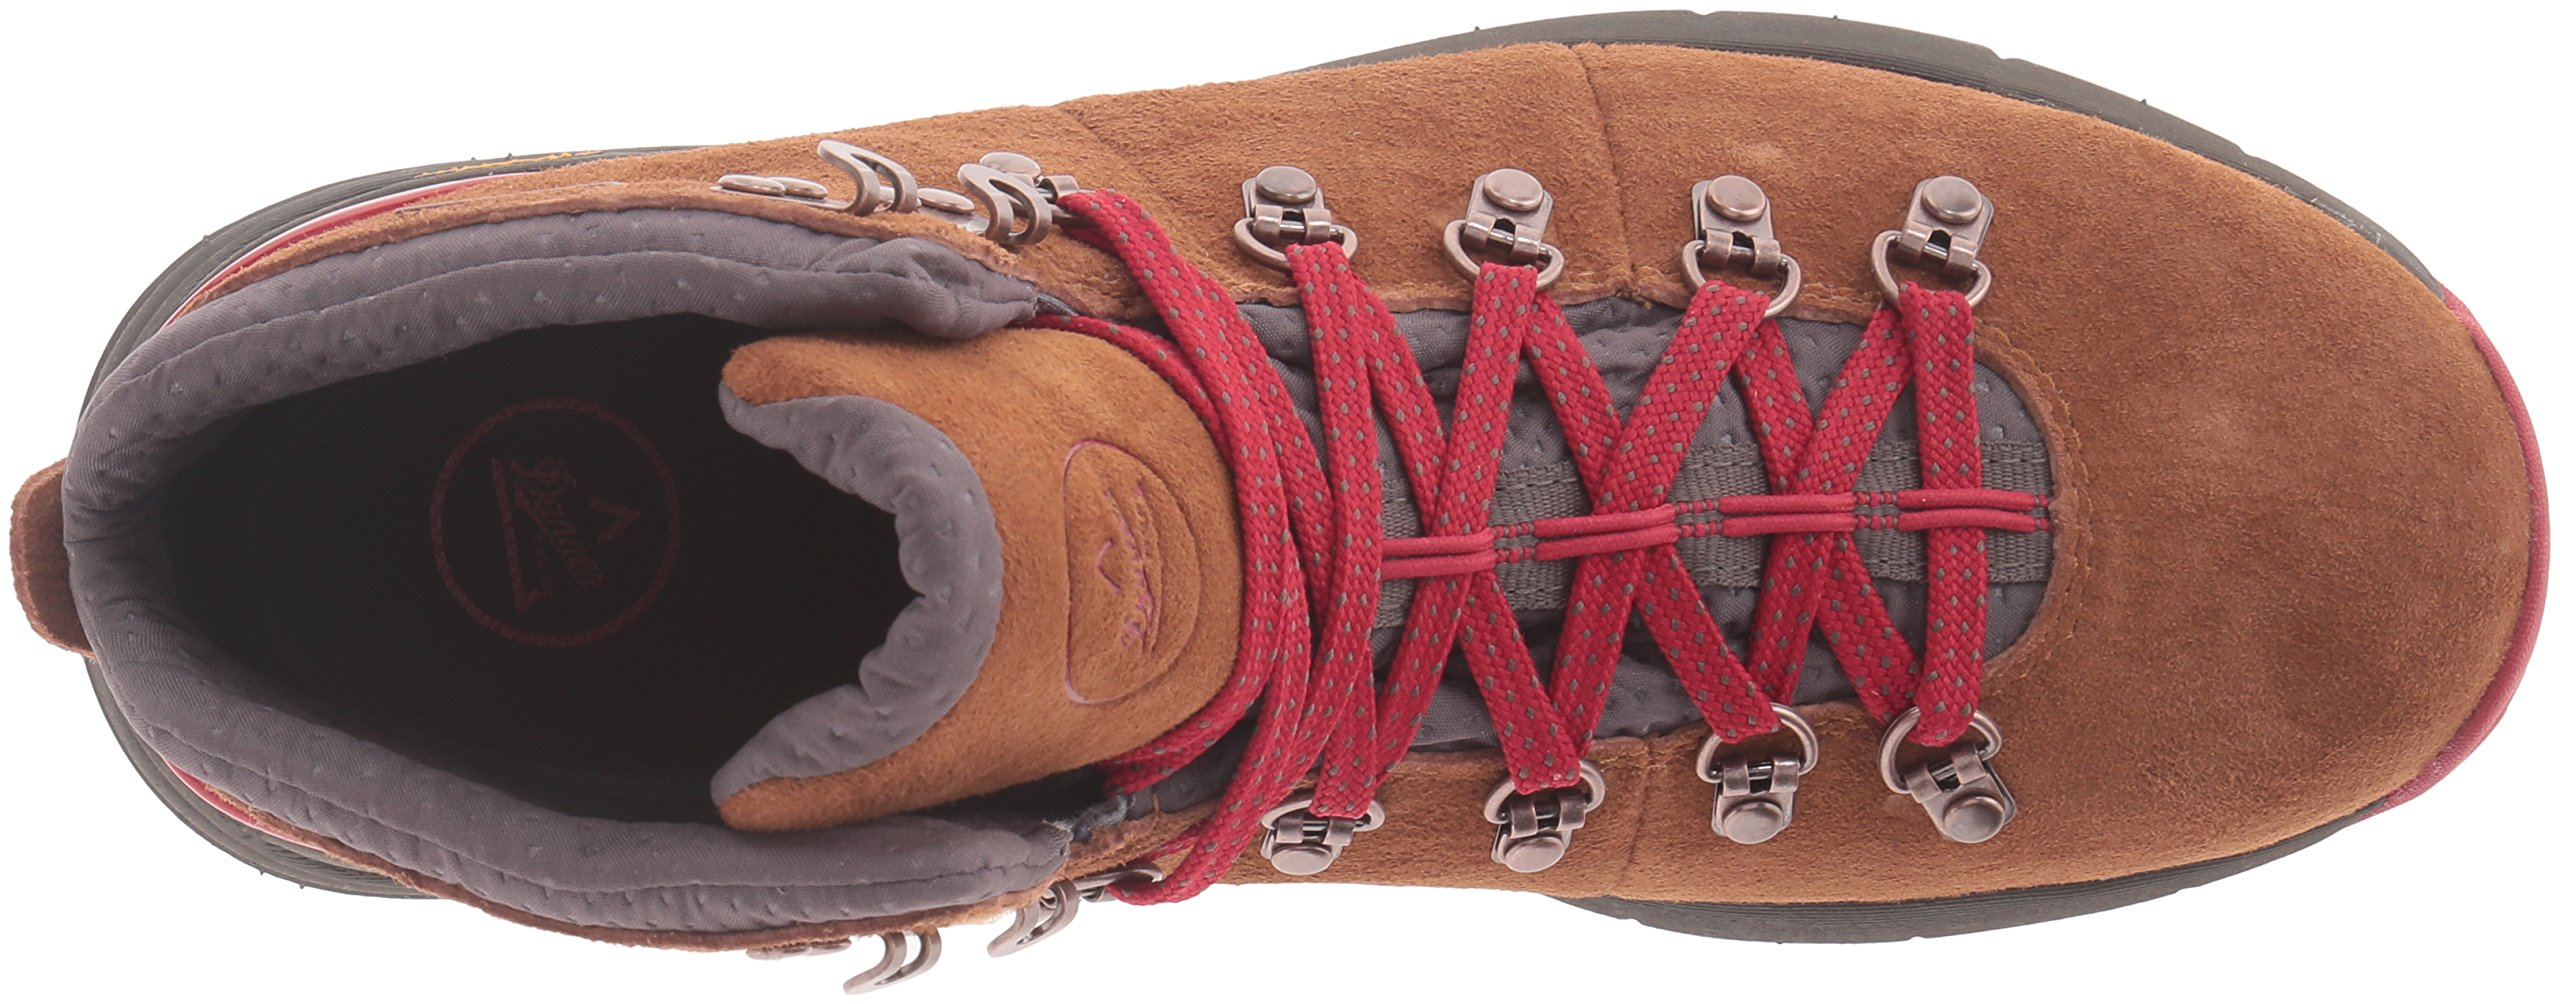 Danner Women's Mountain 600 4.5'' Hiking Boot, Brown/Red, 8.5 M US by Danner (Image #8)